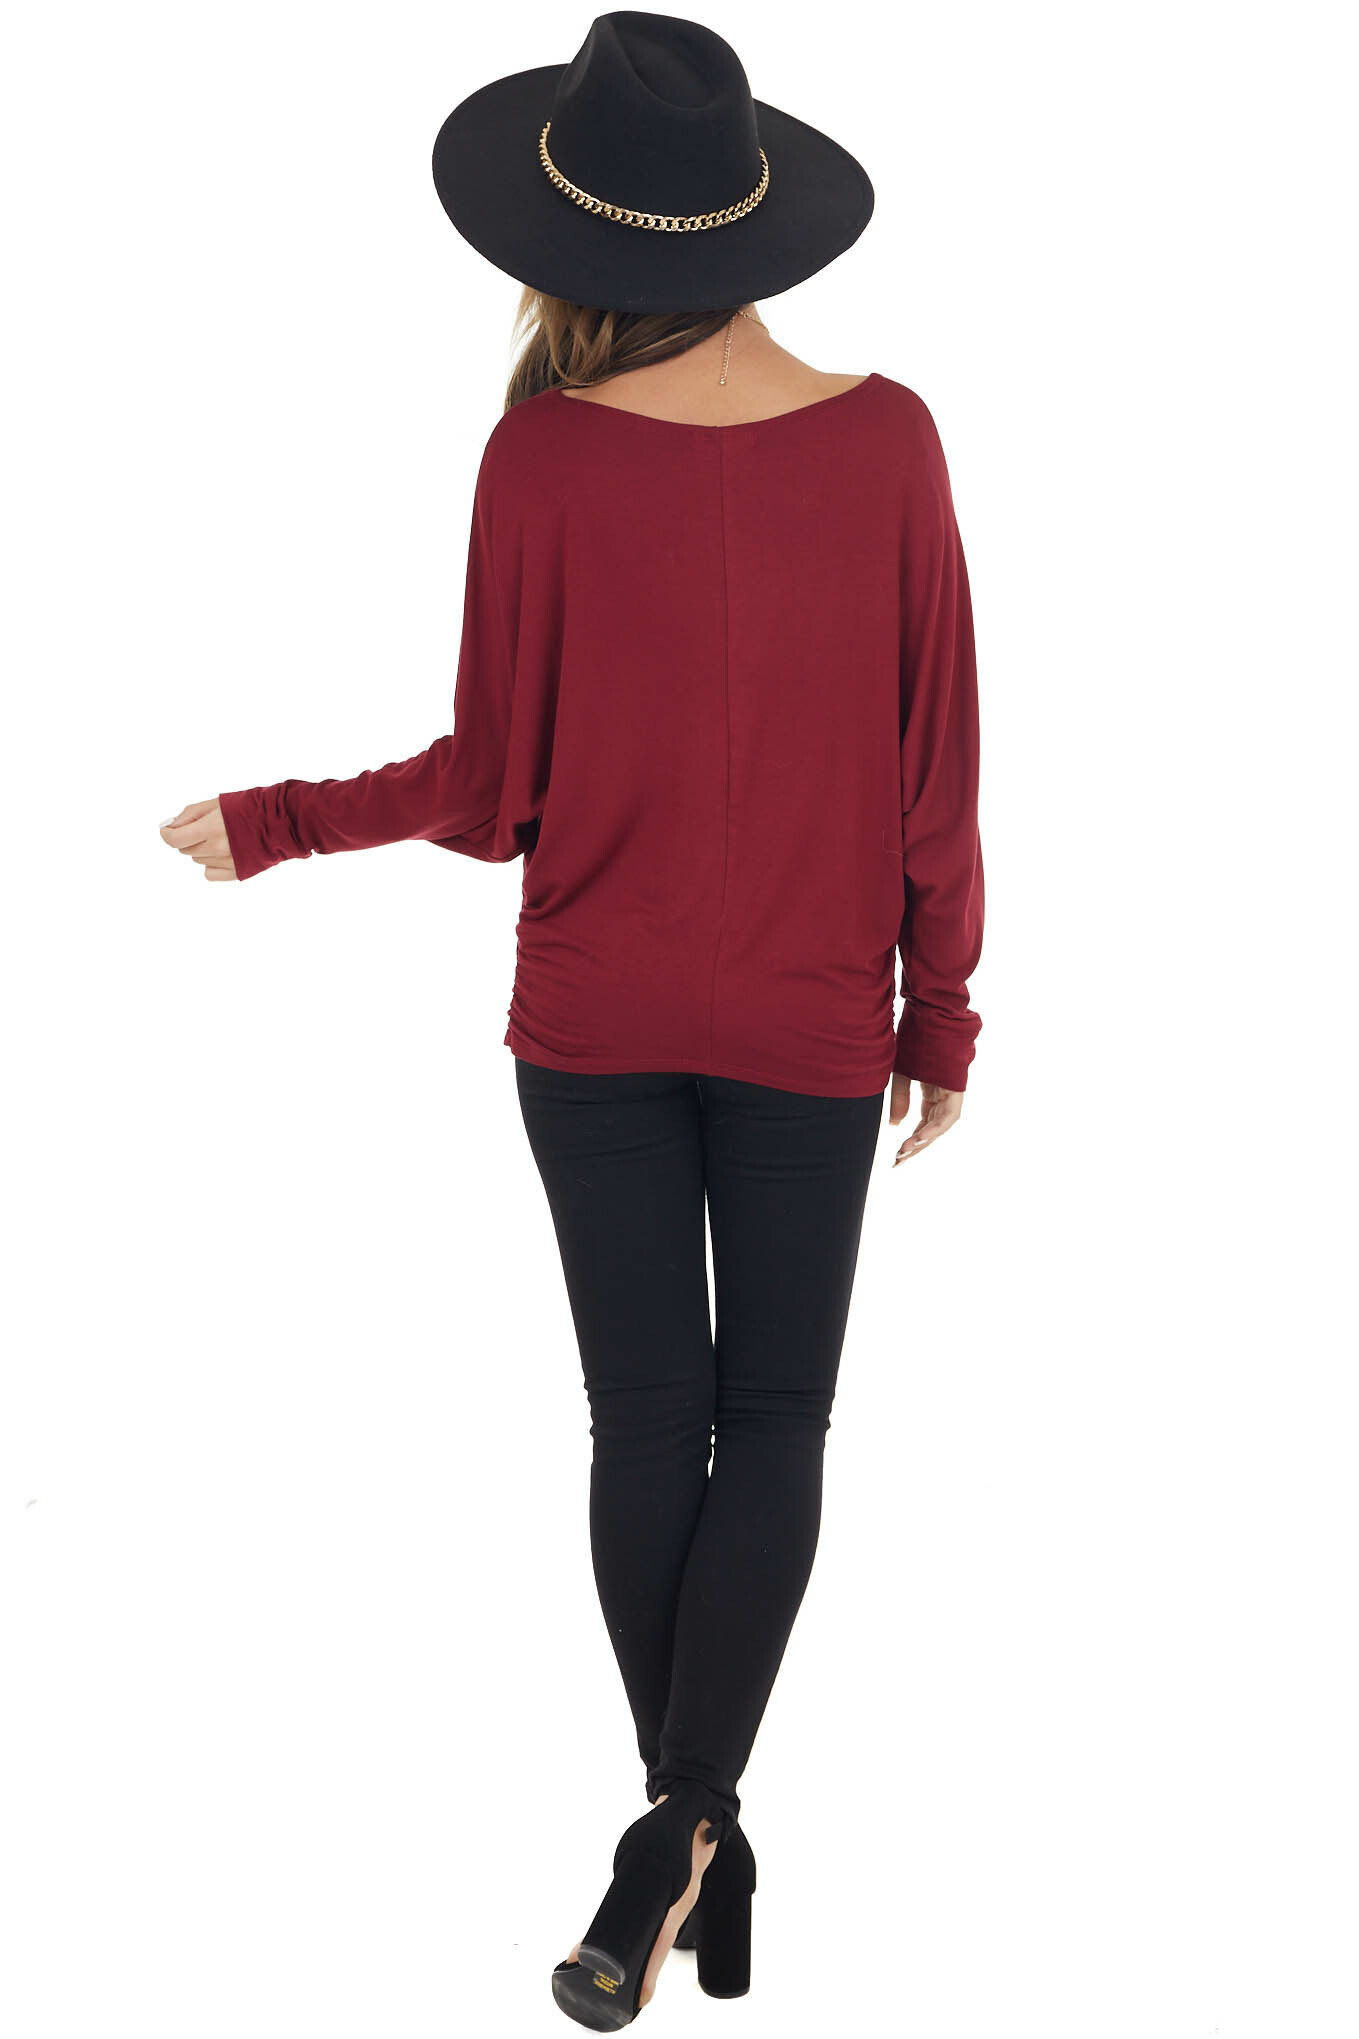 Wine Dolman Sleeve Stretchy Knit Top with Banded Cuffs